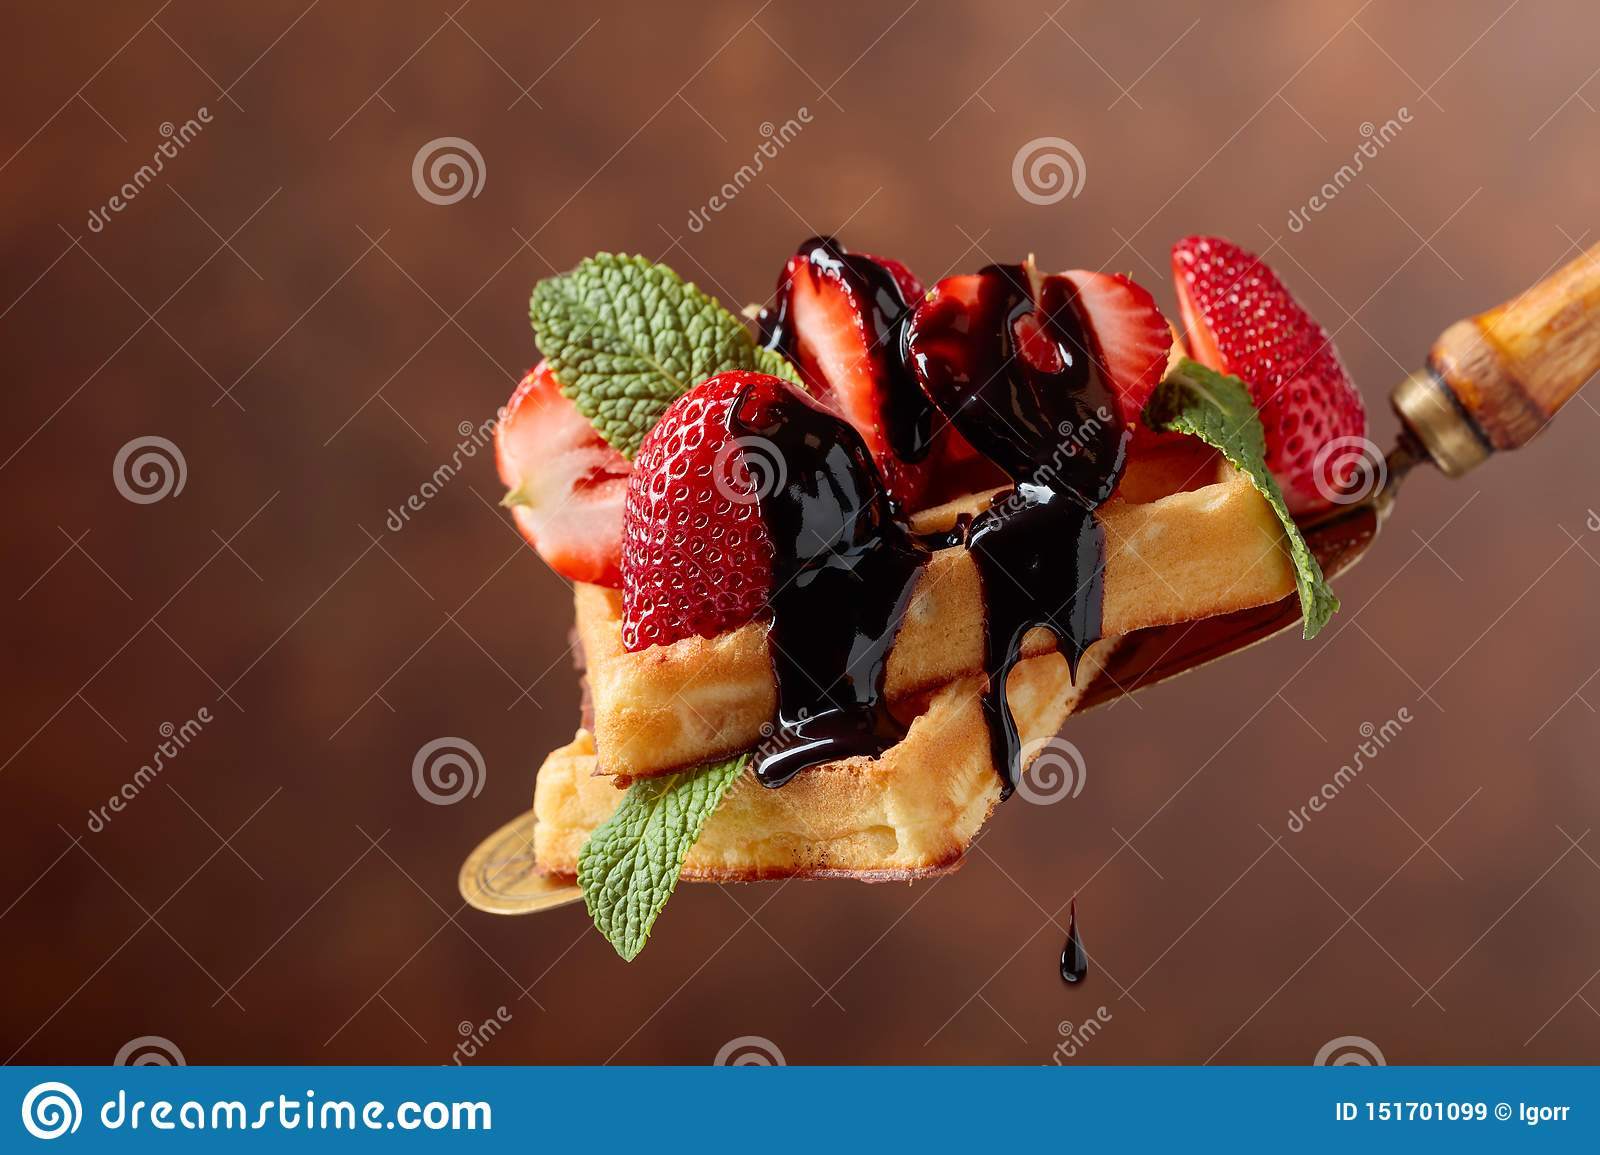 Belgian waffles with strawberries, mint and chocolate sauce